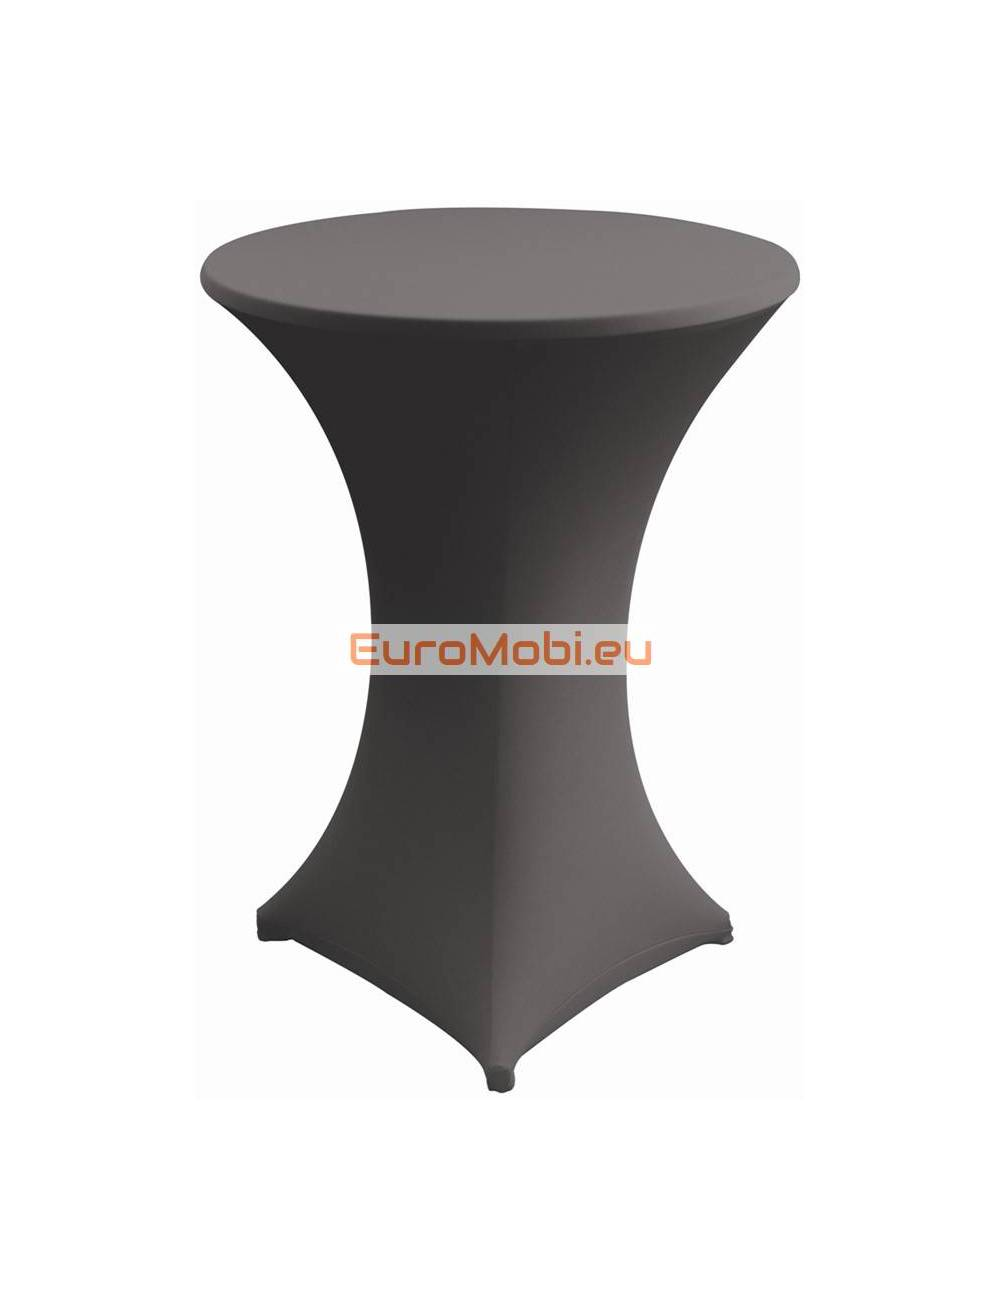 Cover and top stretch for standing table round grey